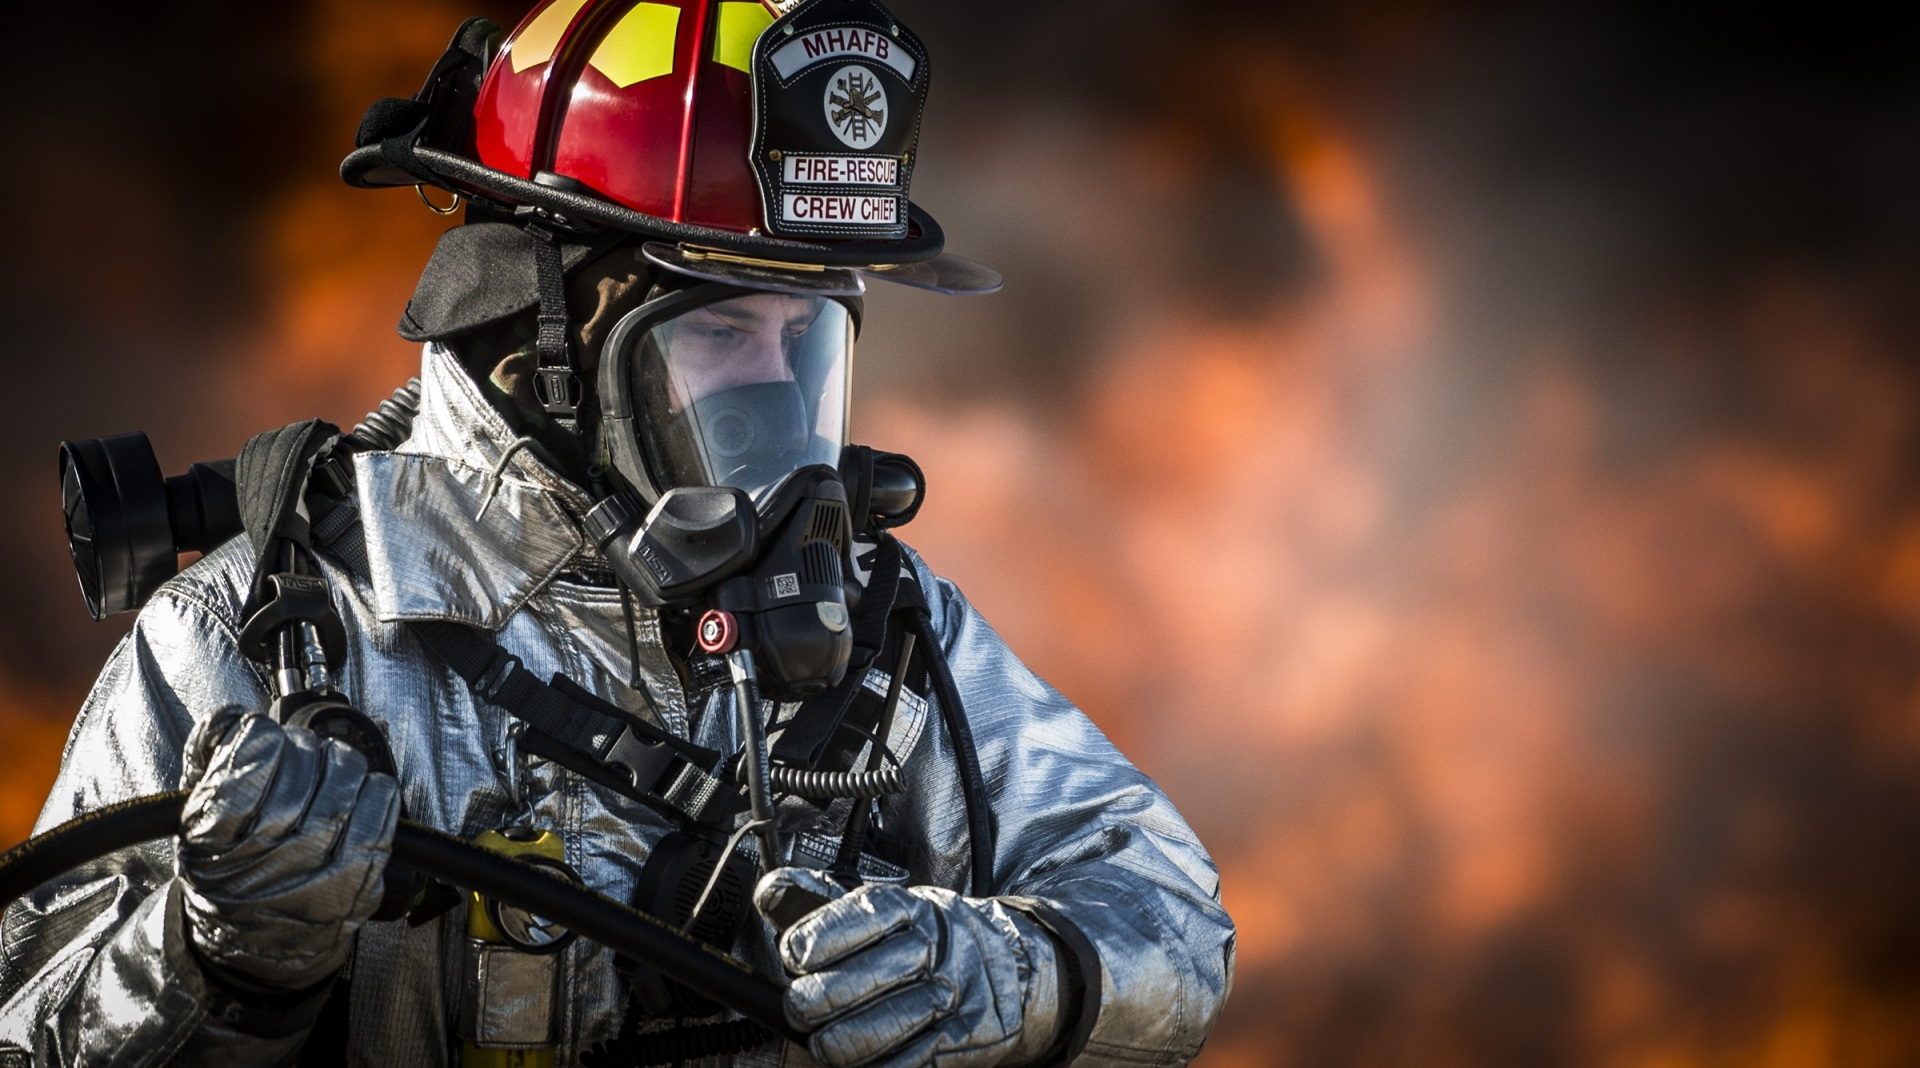 Firefighter wearing helmet and mask.